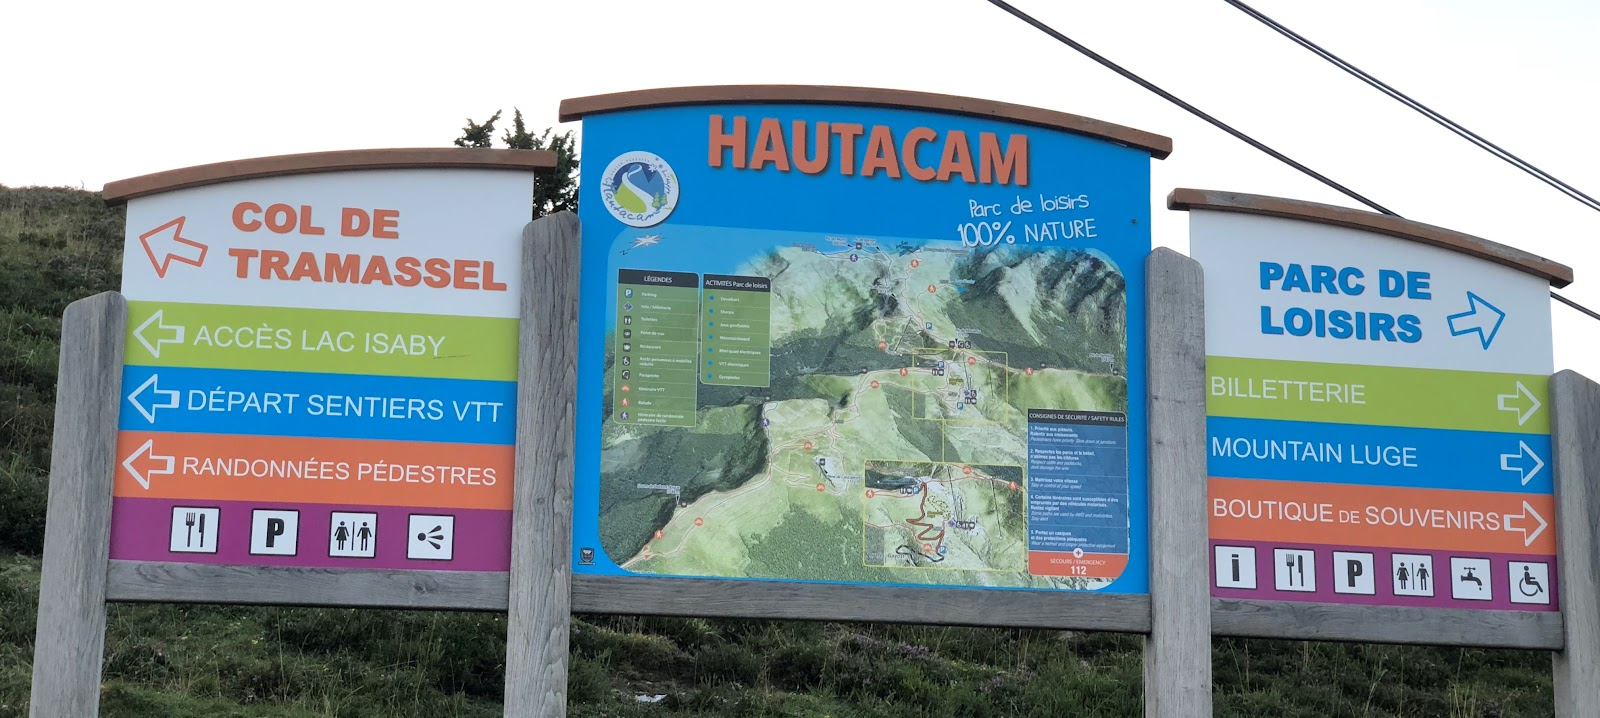 Cycling Hautacam, ski resort and col de Tramassel sign